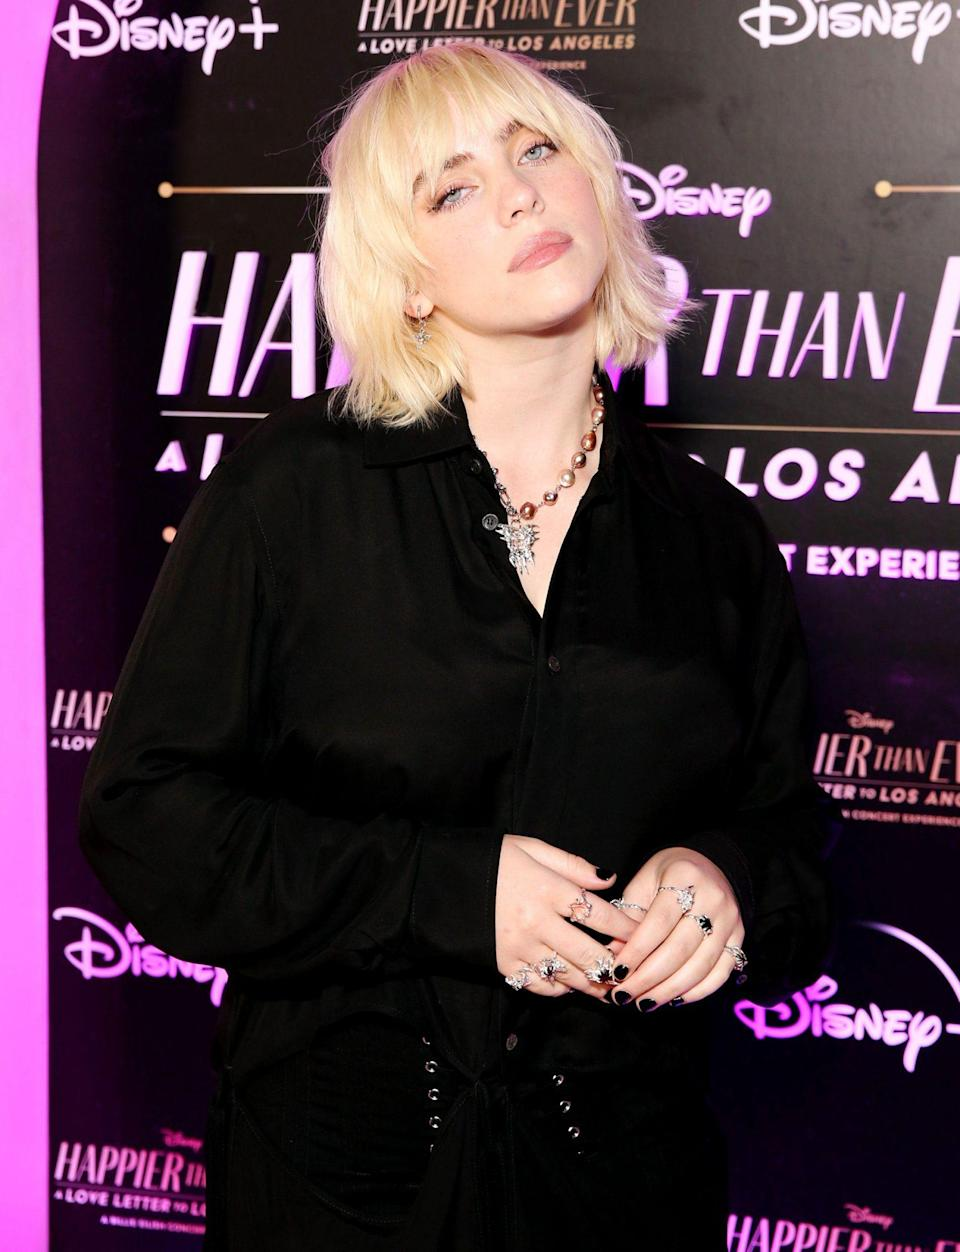 <p>Billie Eilish sports short hair and wears all black to her <em>Happier Than Ever: A Love Letter to Los Angeles</em> worldwide premiere at The Grove on Aug. 30 in L.A.</p>